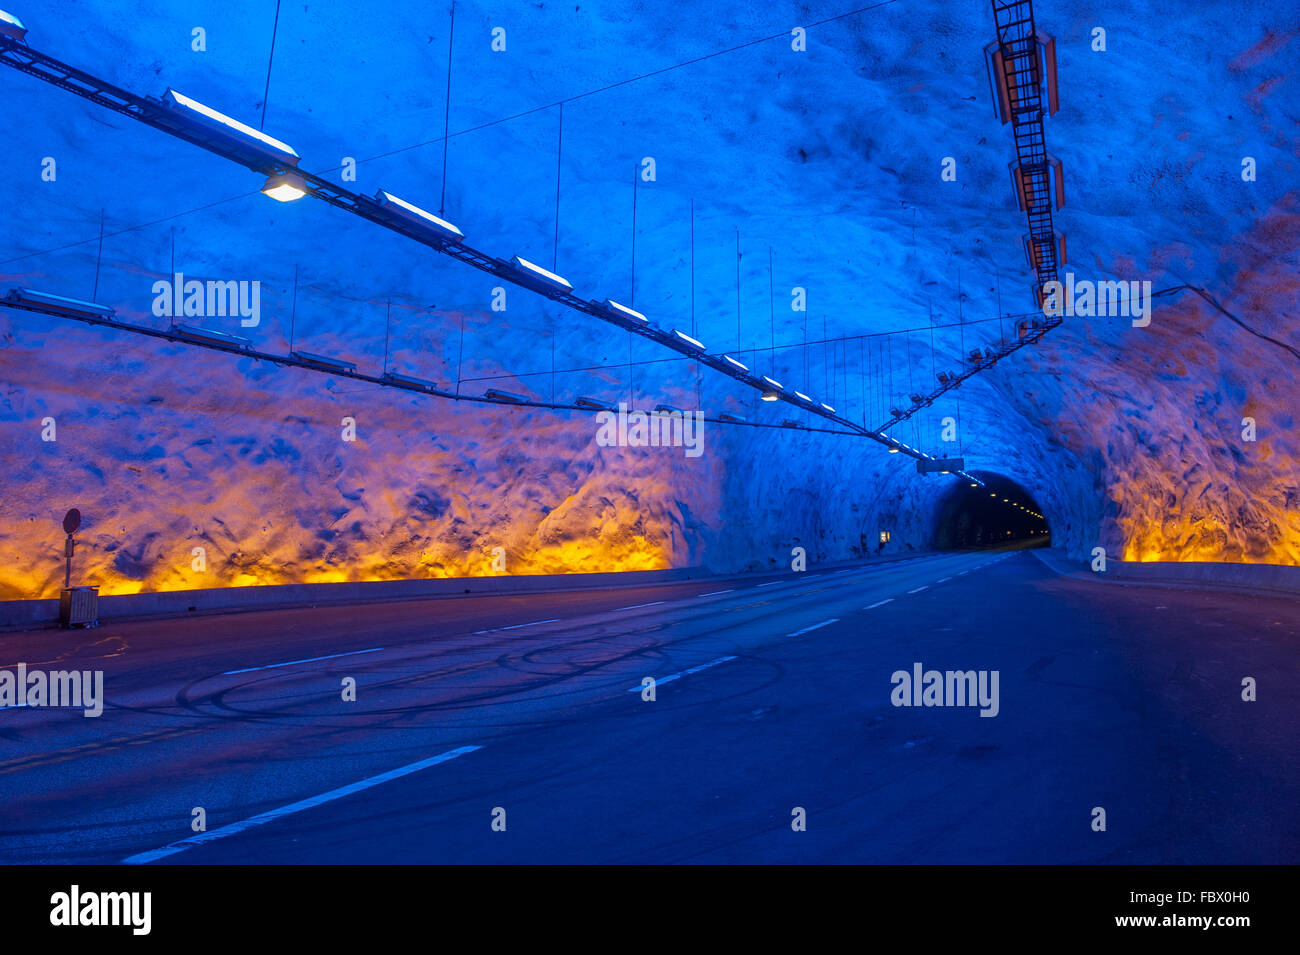 Laerdal tunnel, Norway, the longest road tunnel in the world - Stock Image